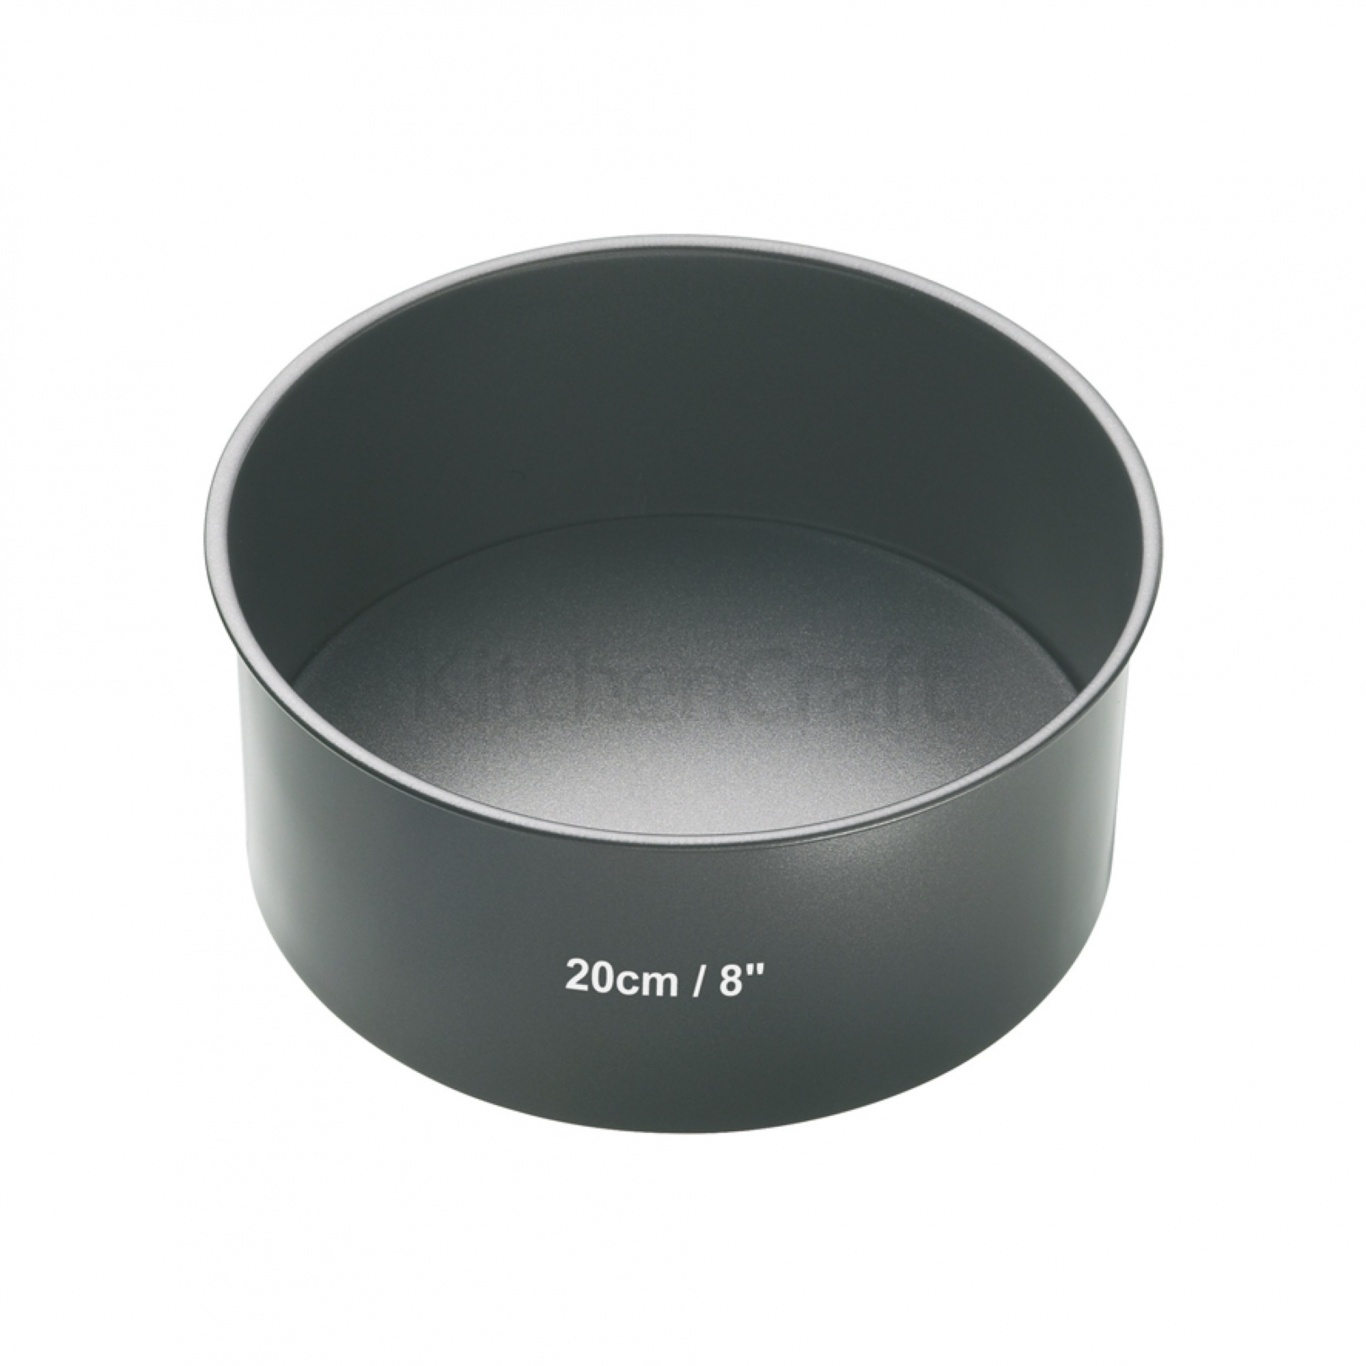 Image of Non Stick Round Deep Cake Tin 20cm 8